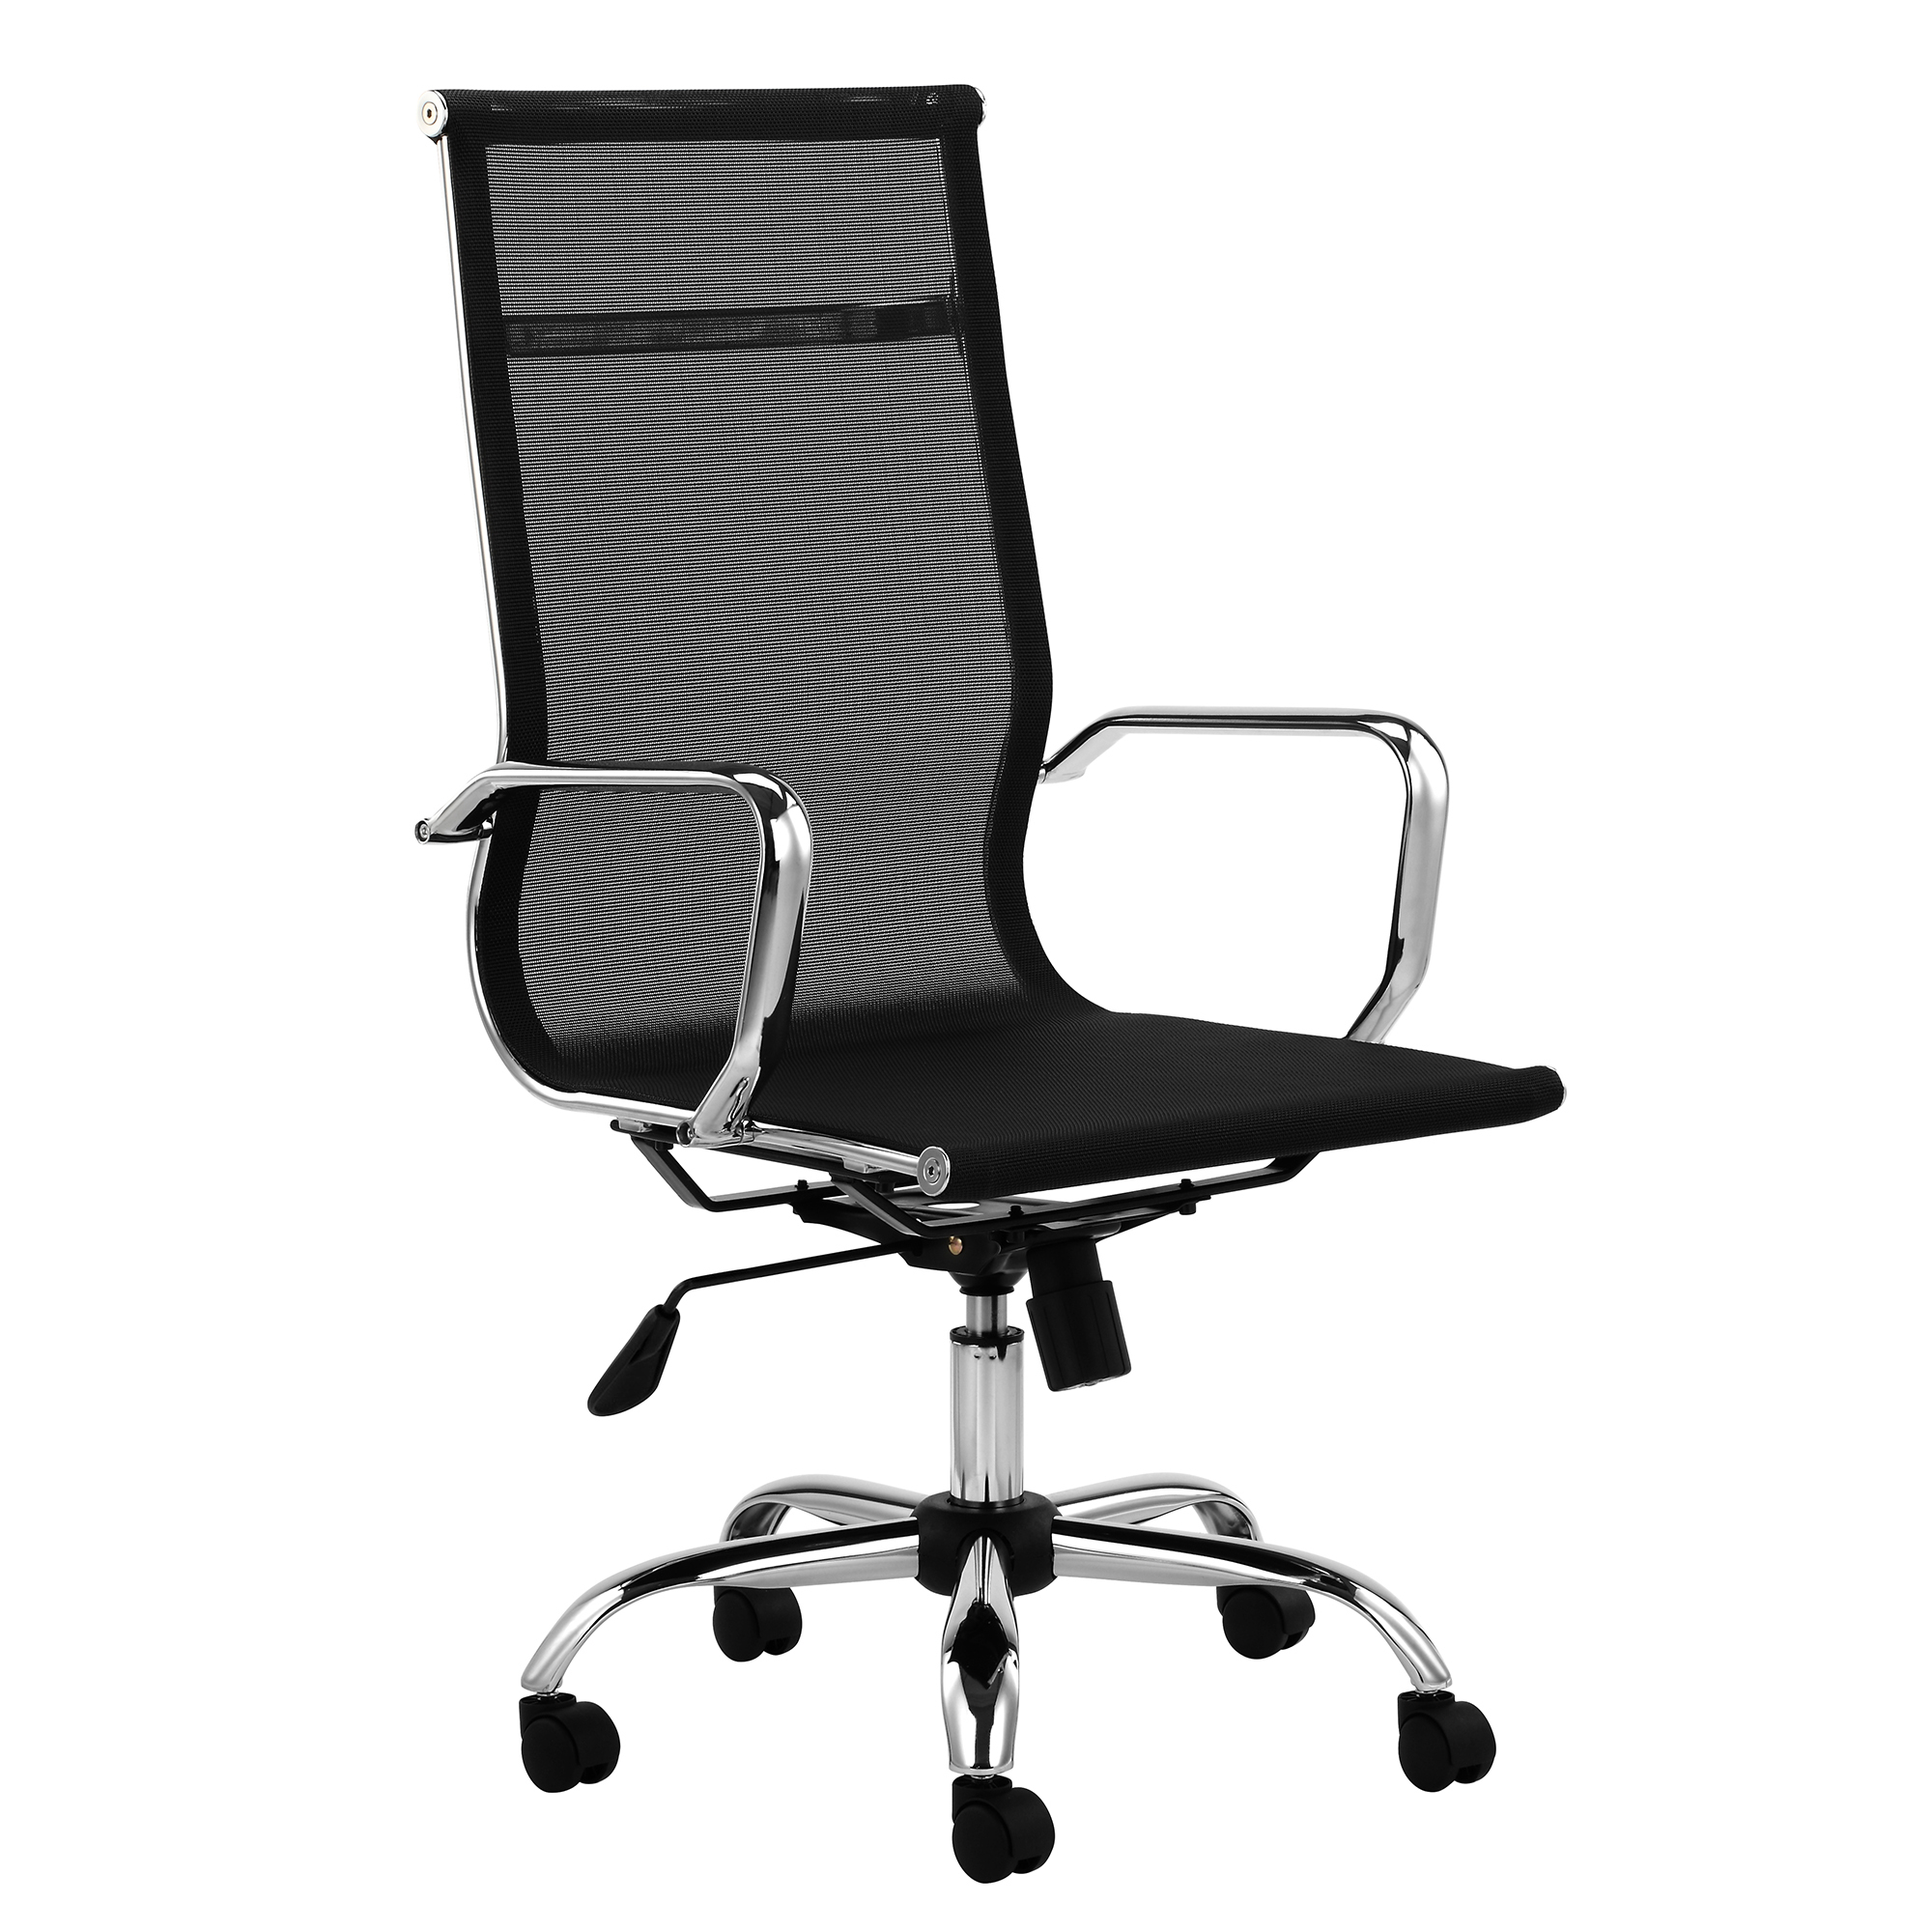 Work Chair Eames Replica Mesh High Back Executive Office Chair